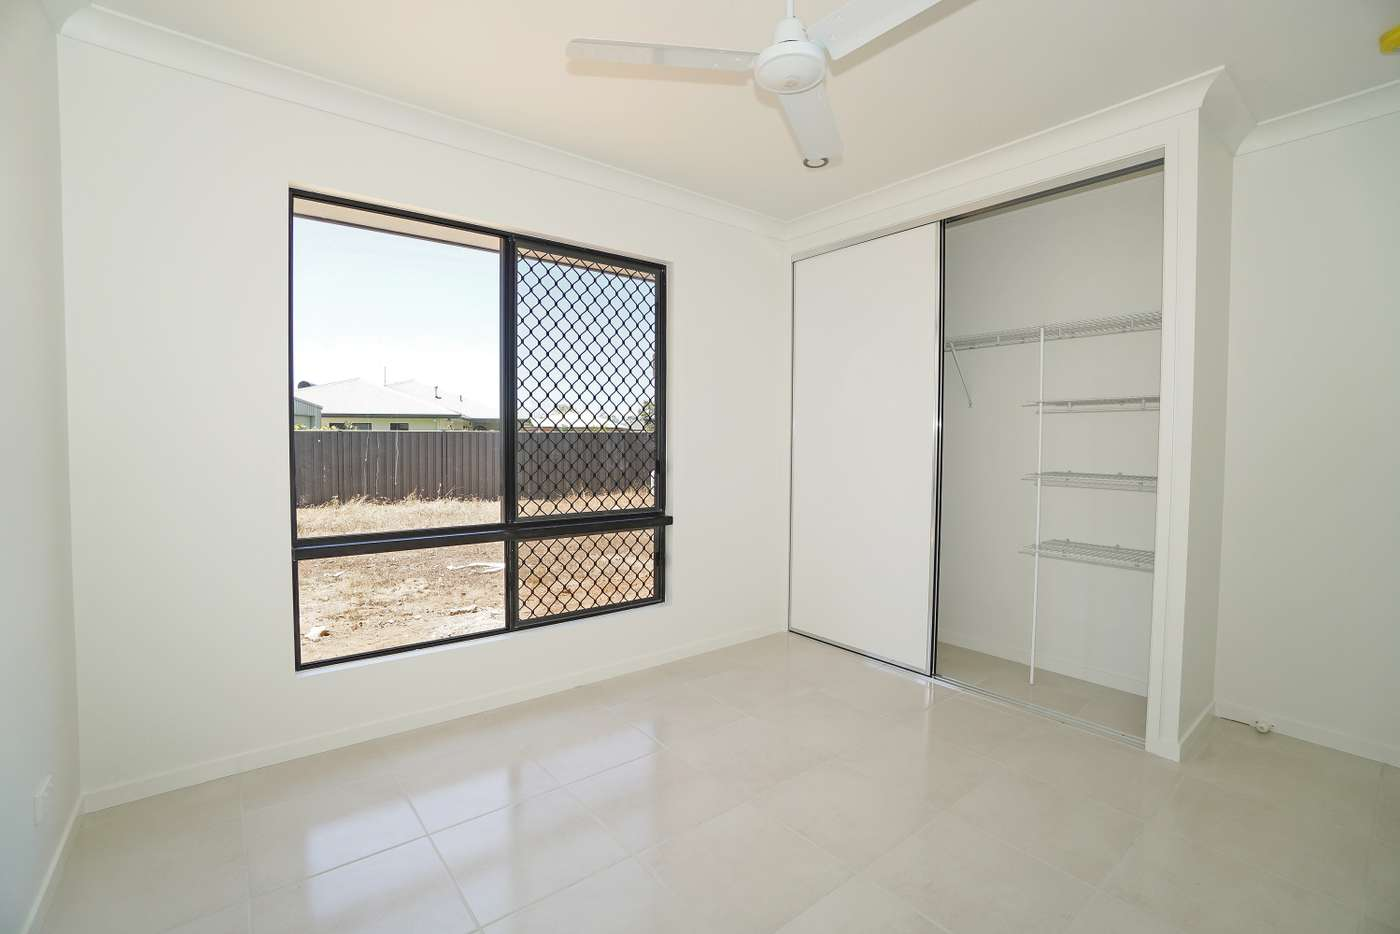 Sixth view of Homely house listing, 152 Hastie Road, Mareeba QLD 4880